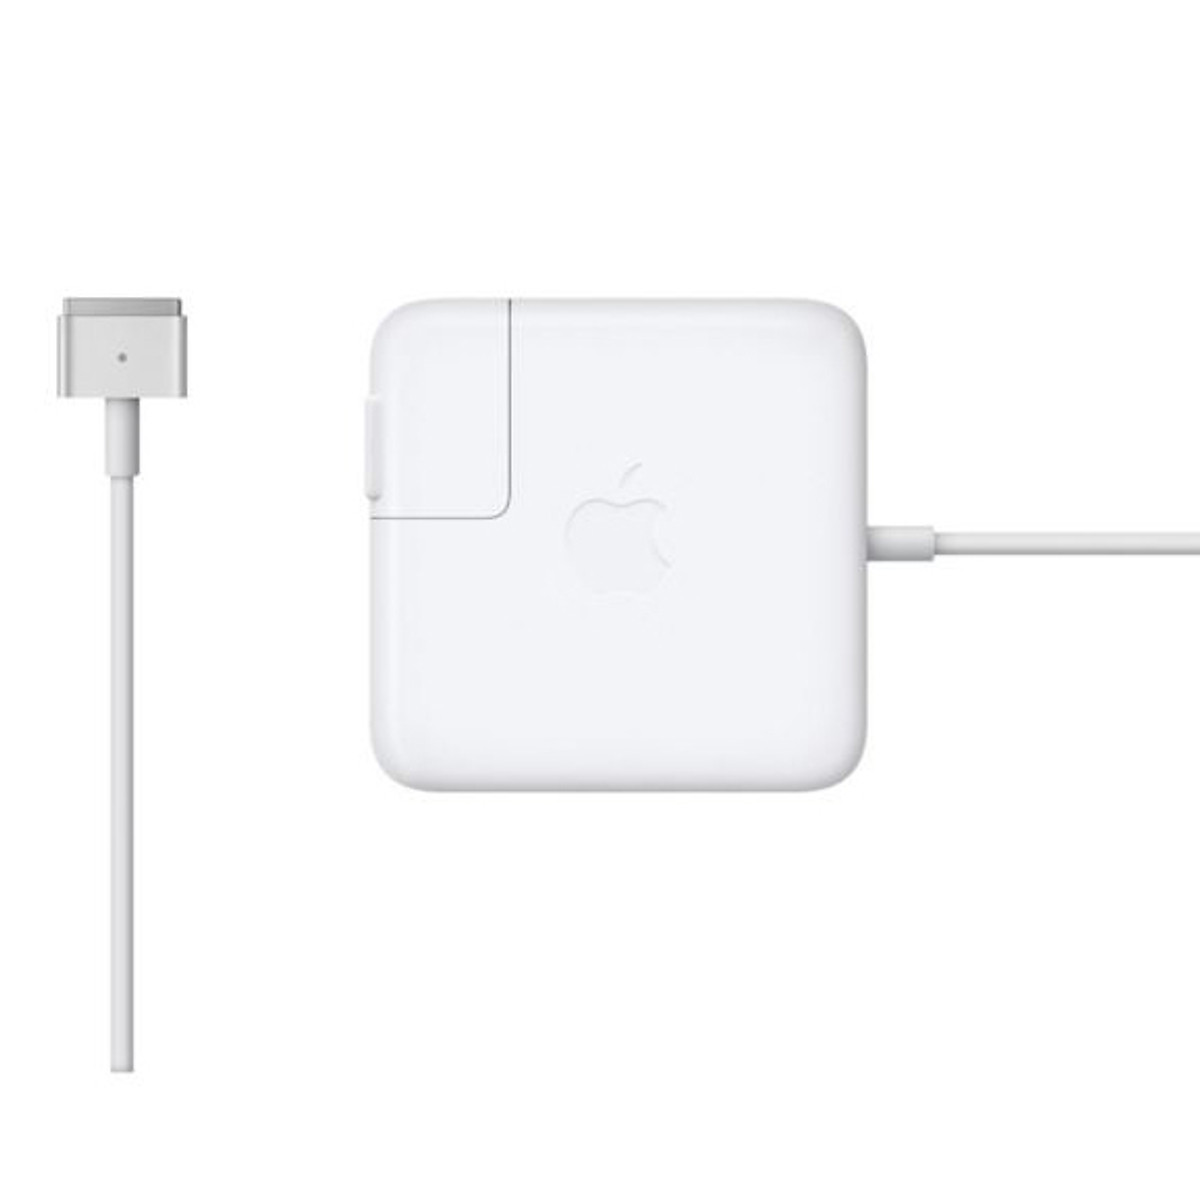 ADAPTER - (ADAPTER) APPLE  85W MAGSAFE 2 POWER ADAPTER FOR MACBOOK PRO WITH RETINA DISPLAY - MD506ZA/B